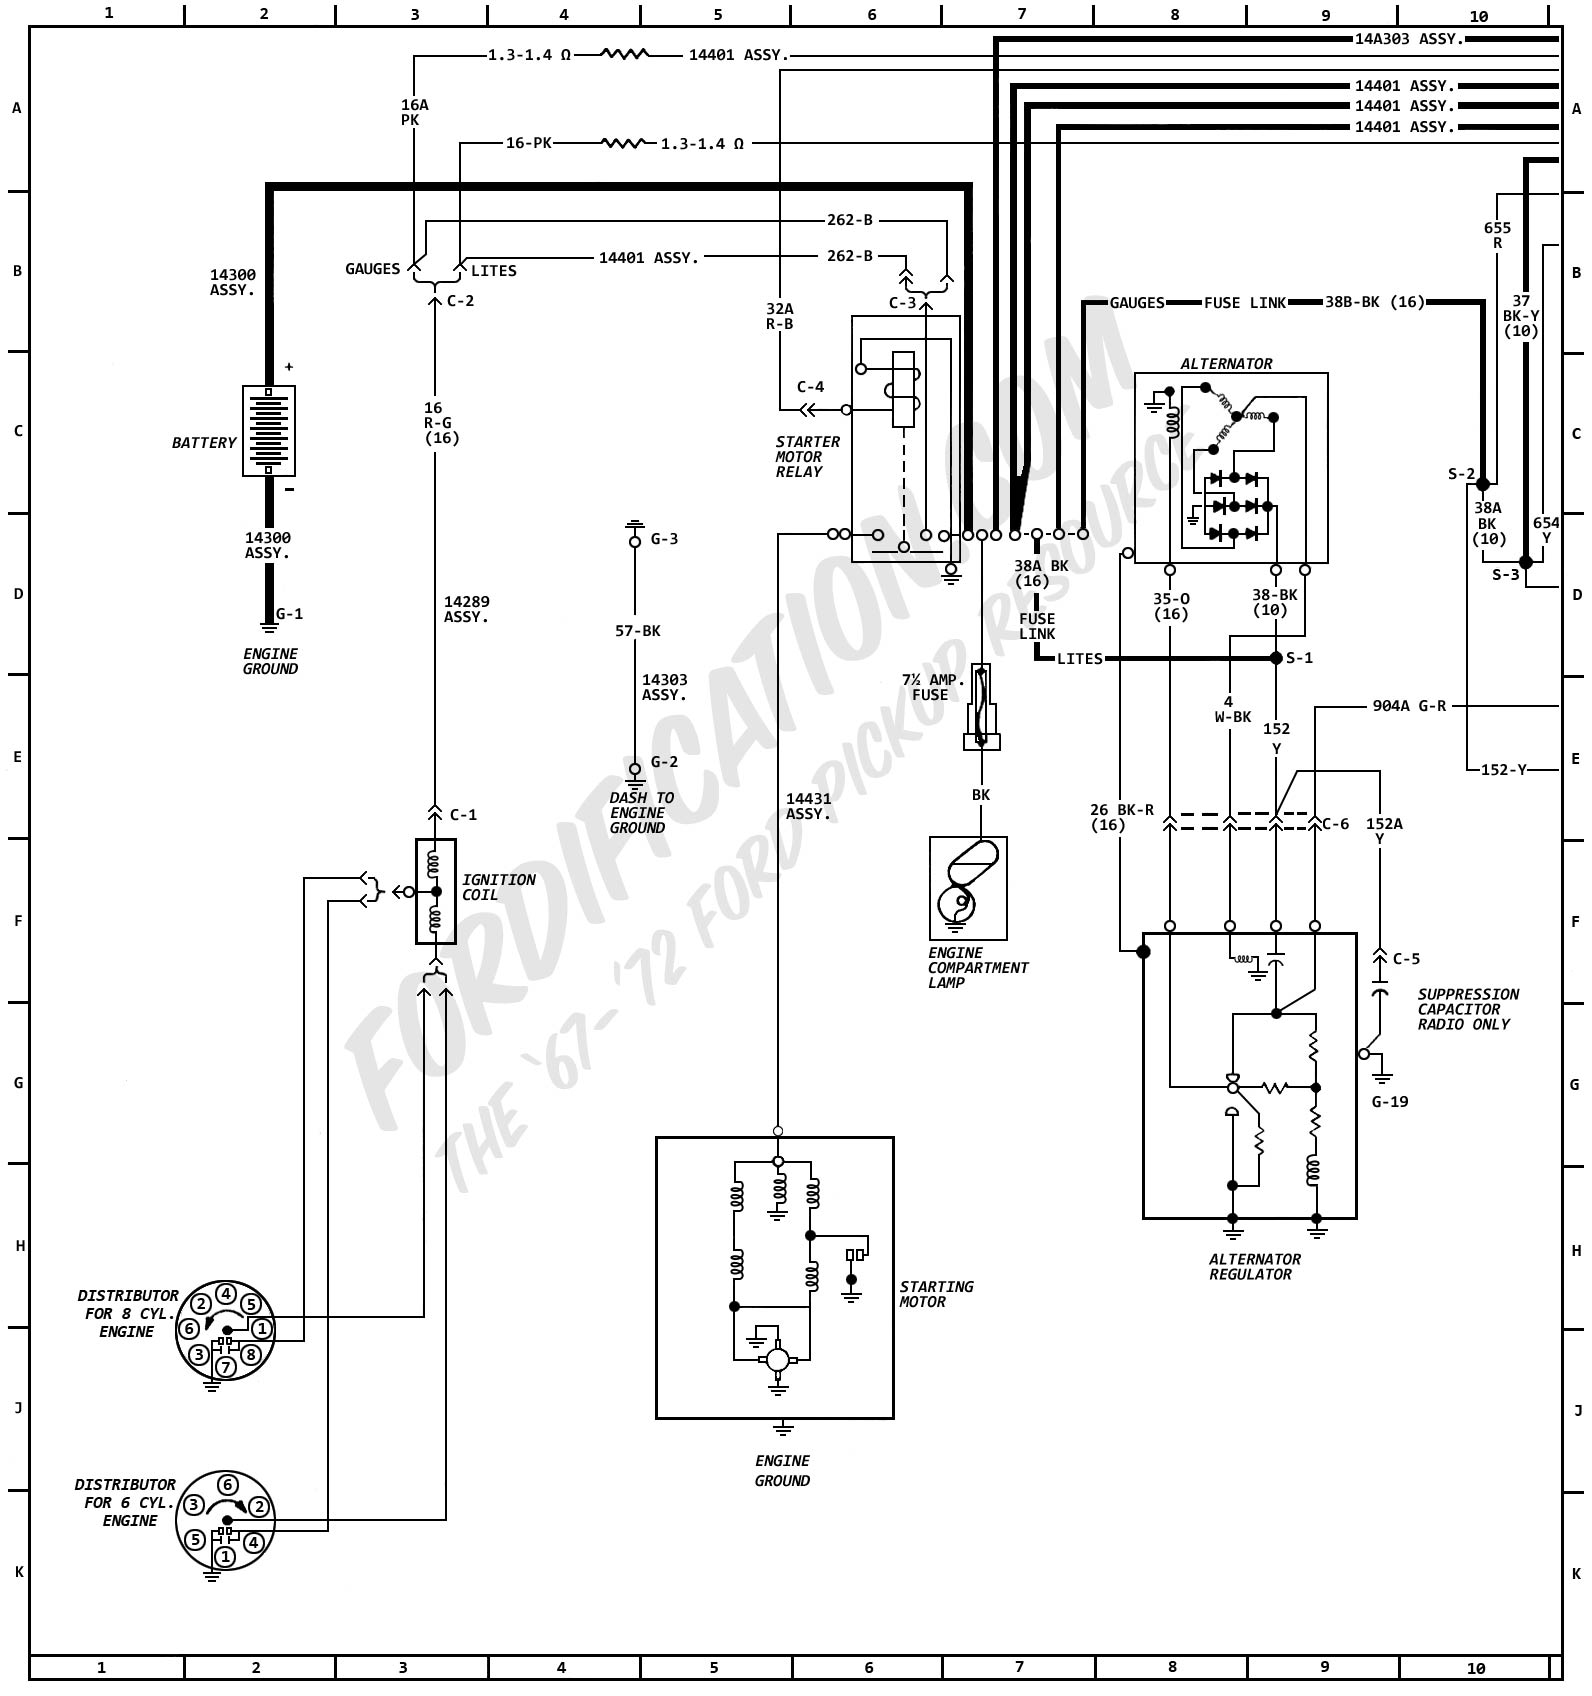 1972 ford truck wiring diagrams fordification com rh fordification com Ford  Truck Radio Wiring Diagram 1978 Ford Truck Wiring Diagram